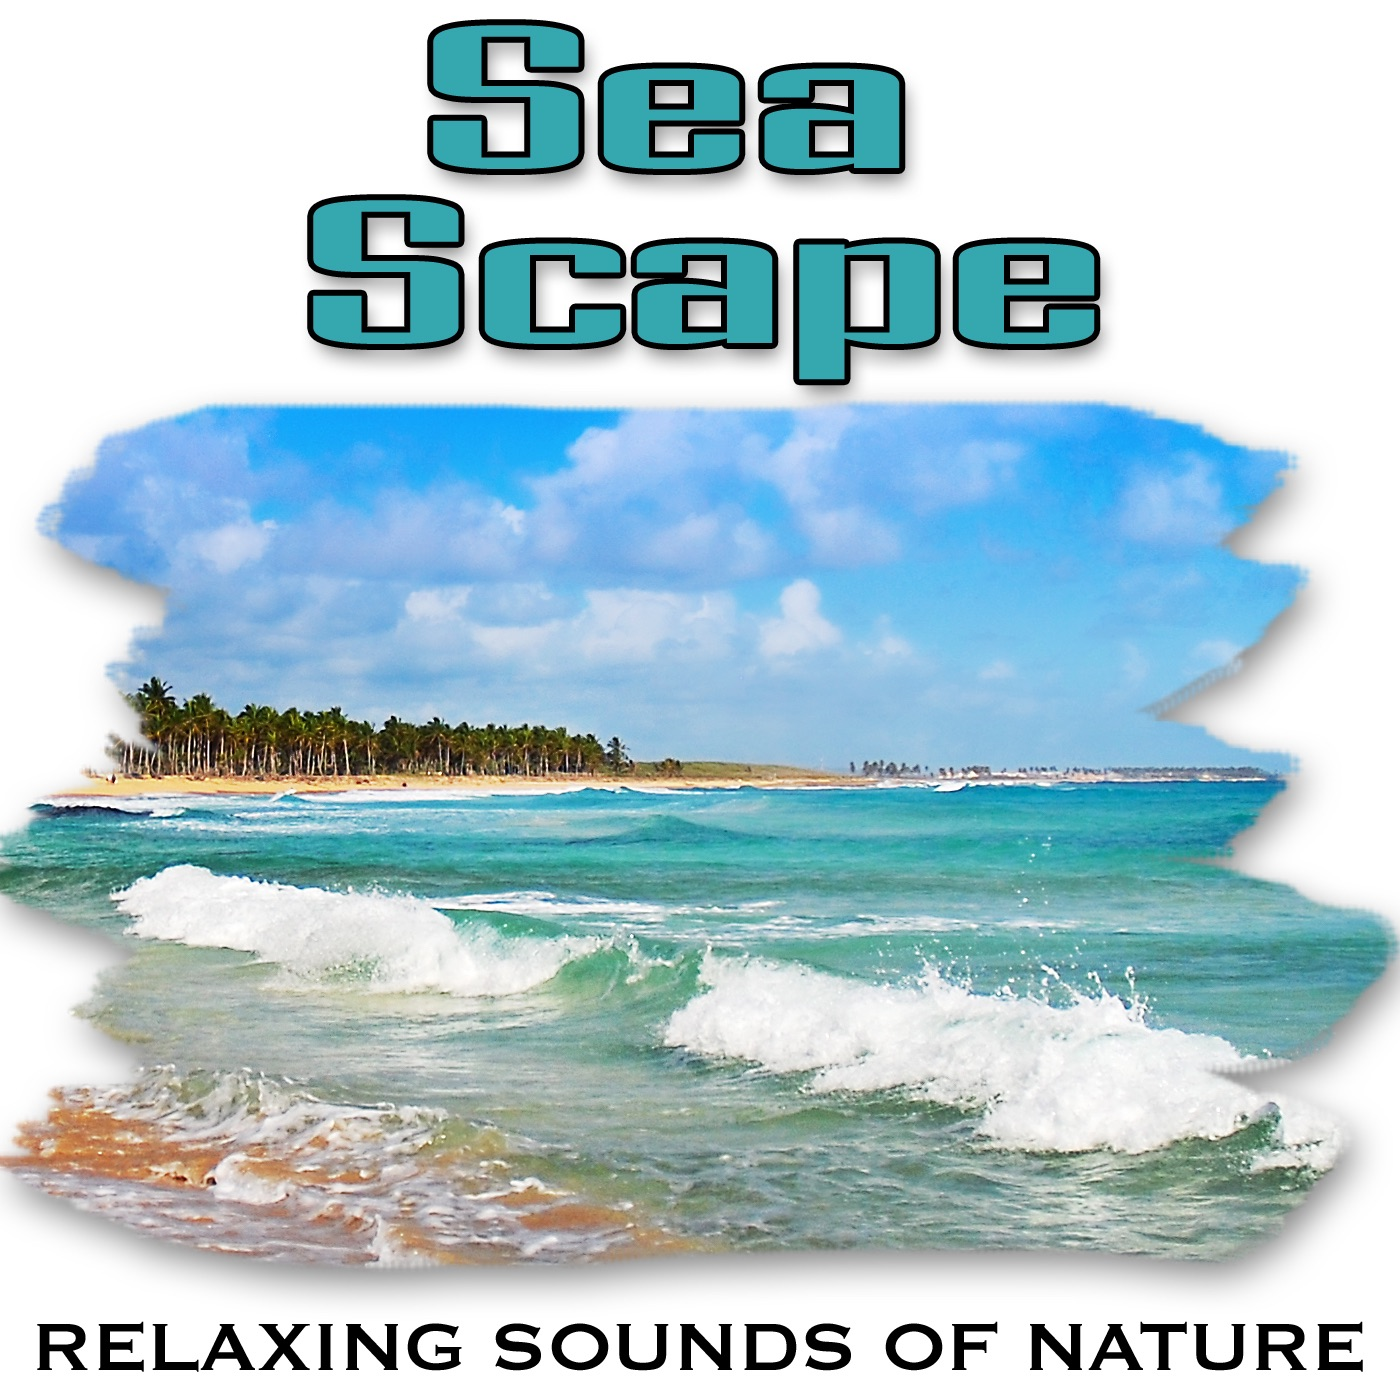 Relaxing Sounds of Nature on iTunes Relaxing Nature Sounds